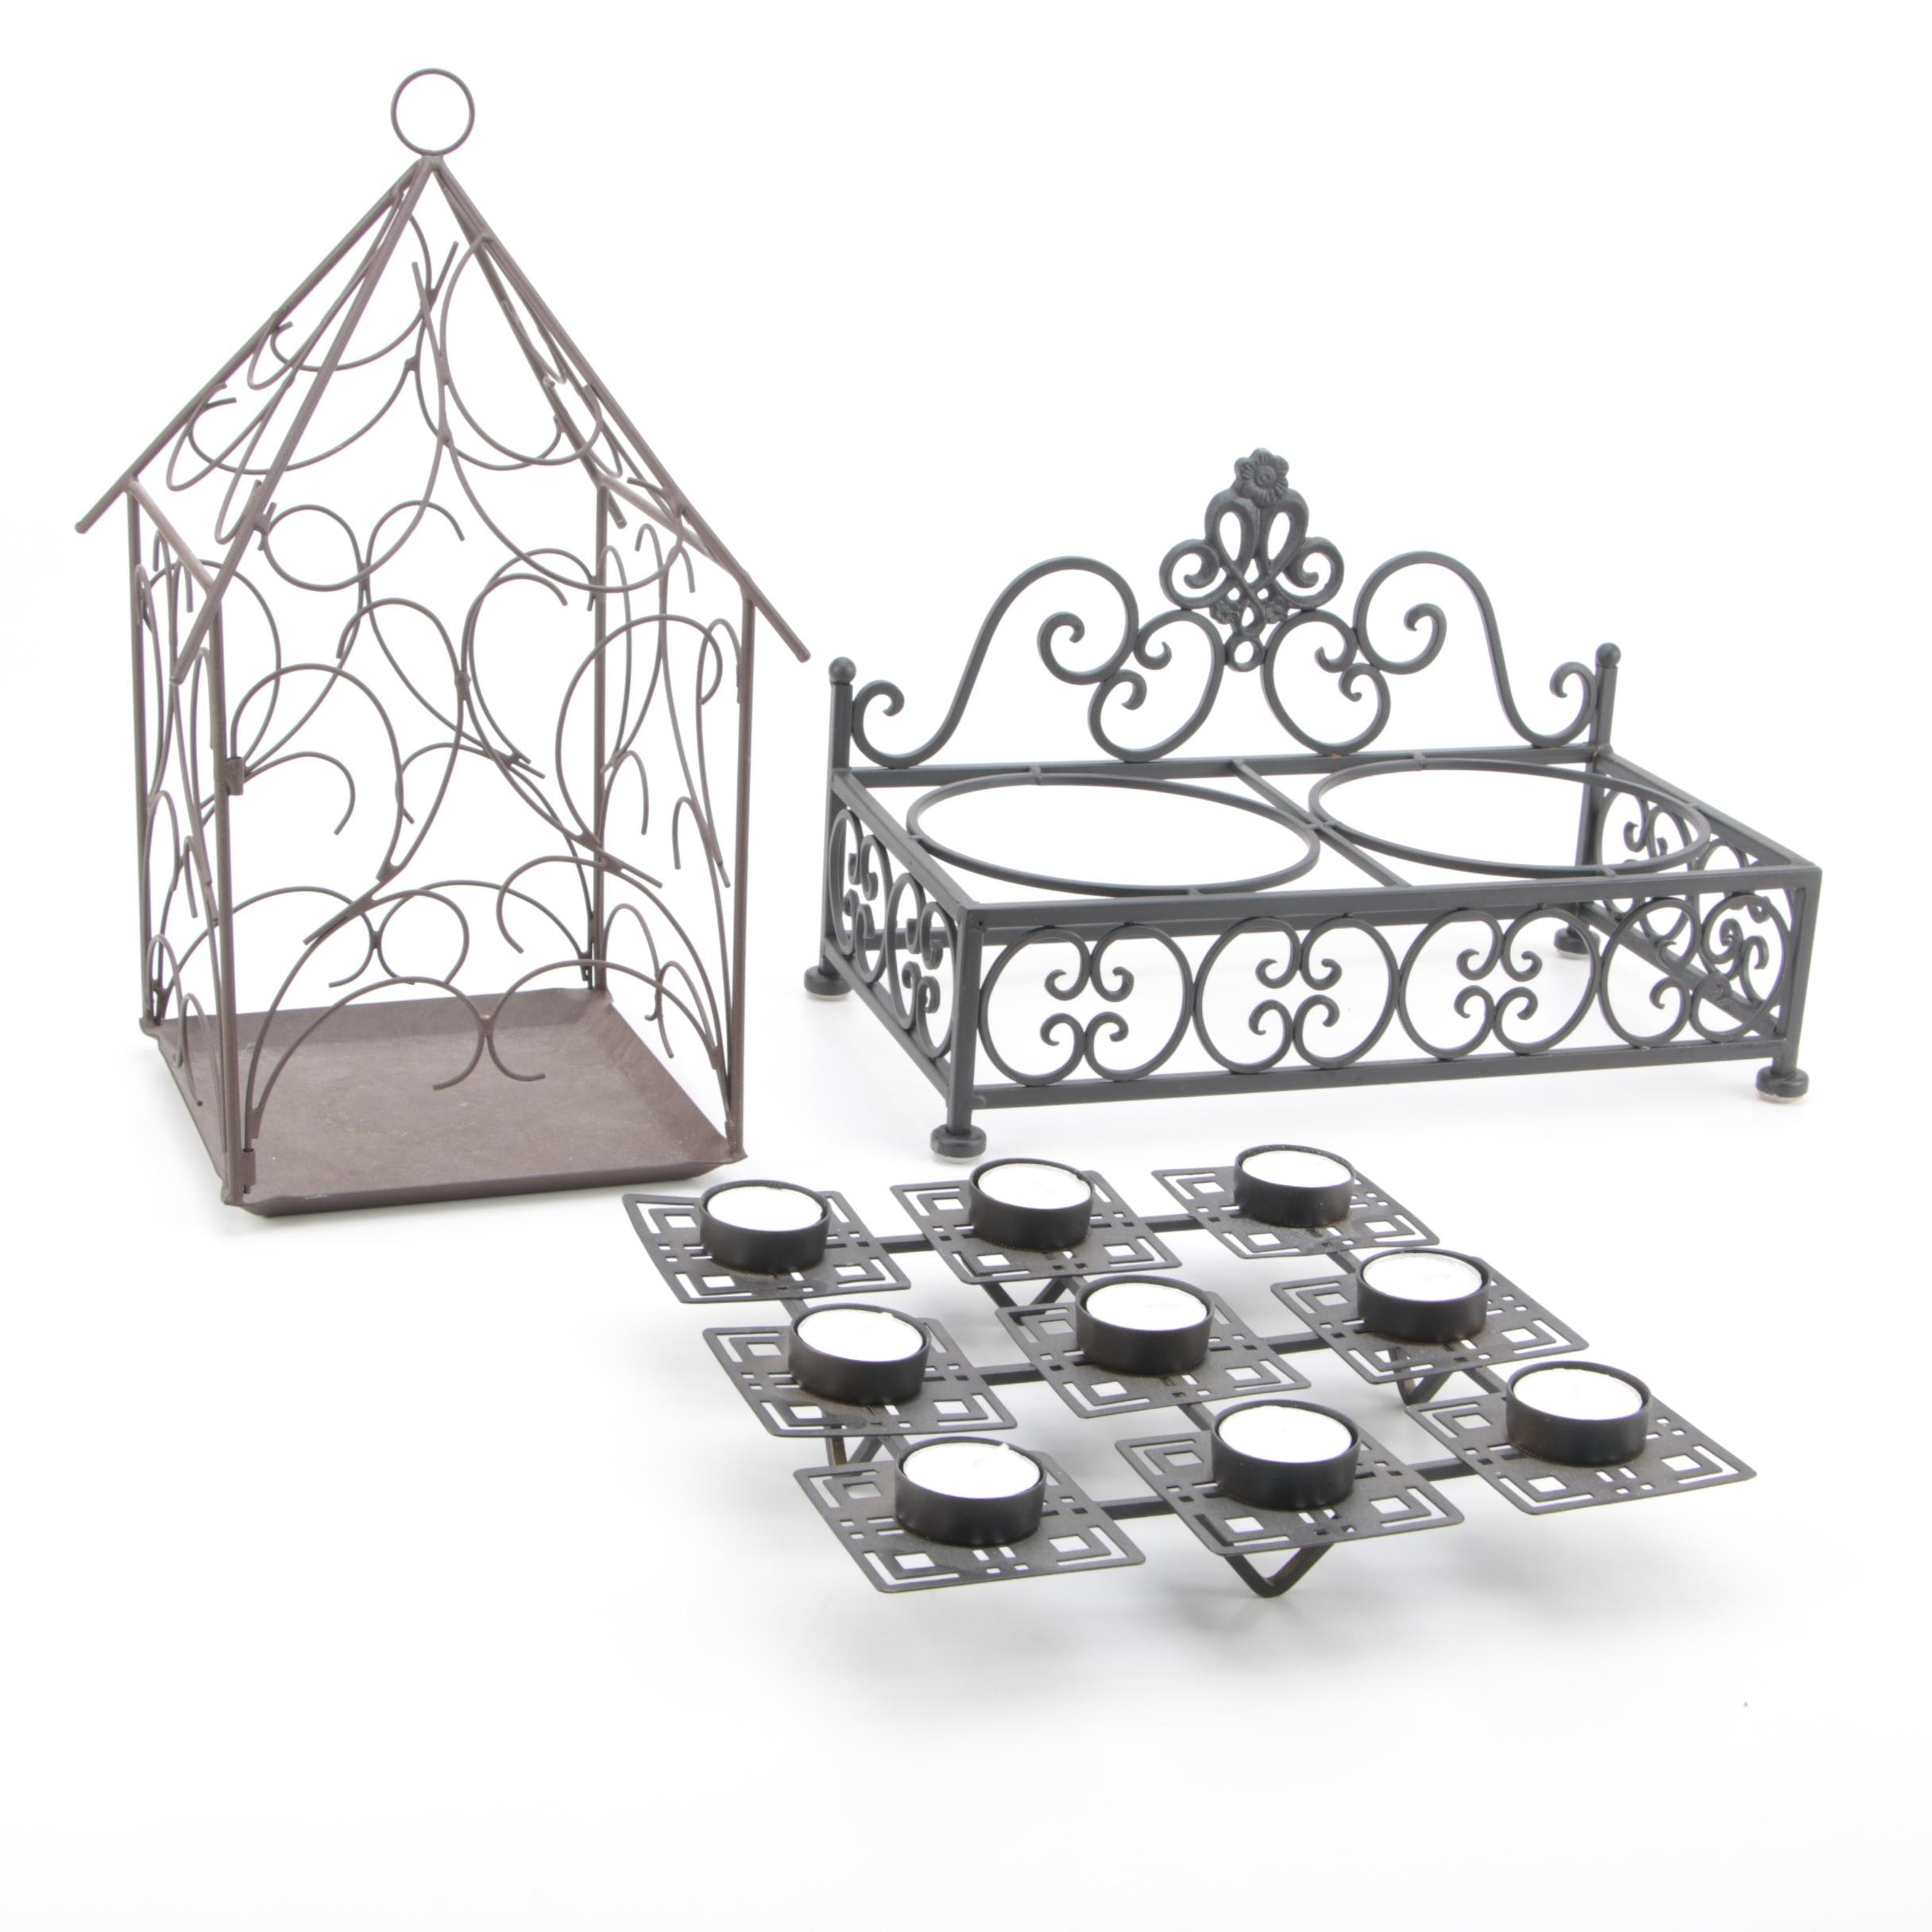 Metal Candle Holder and Metal Decor Assortment